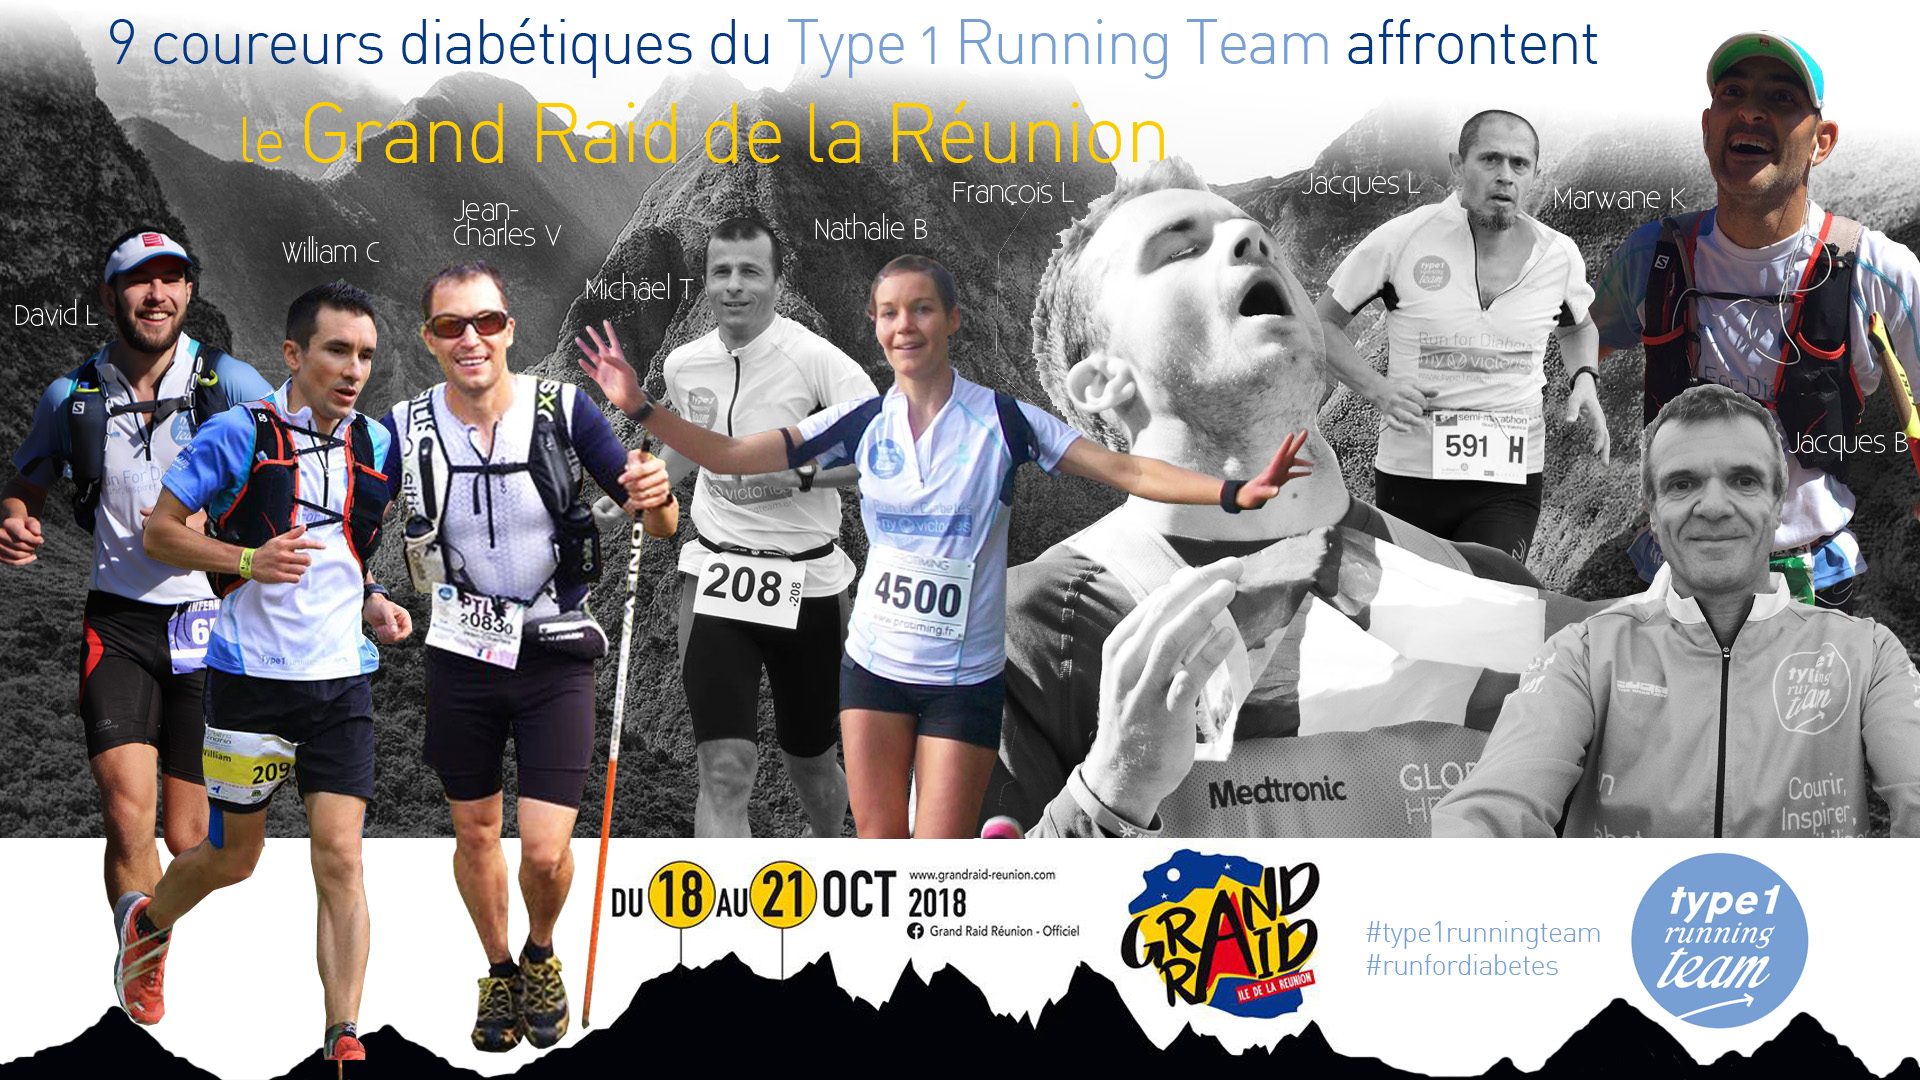 Grand Raid de la réunion - Type 1 Running Team